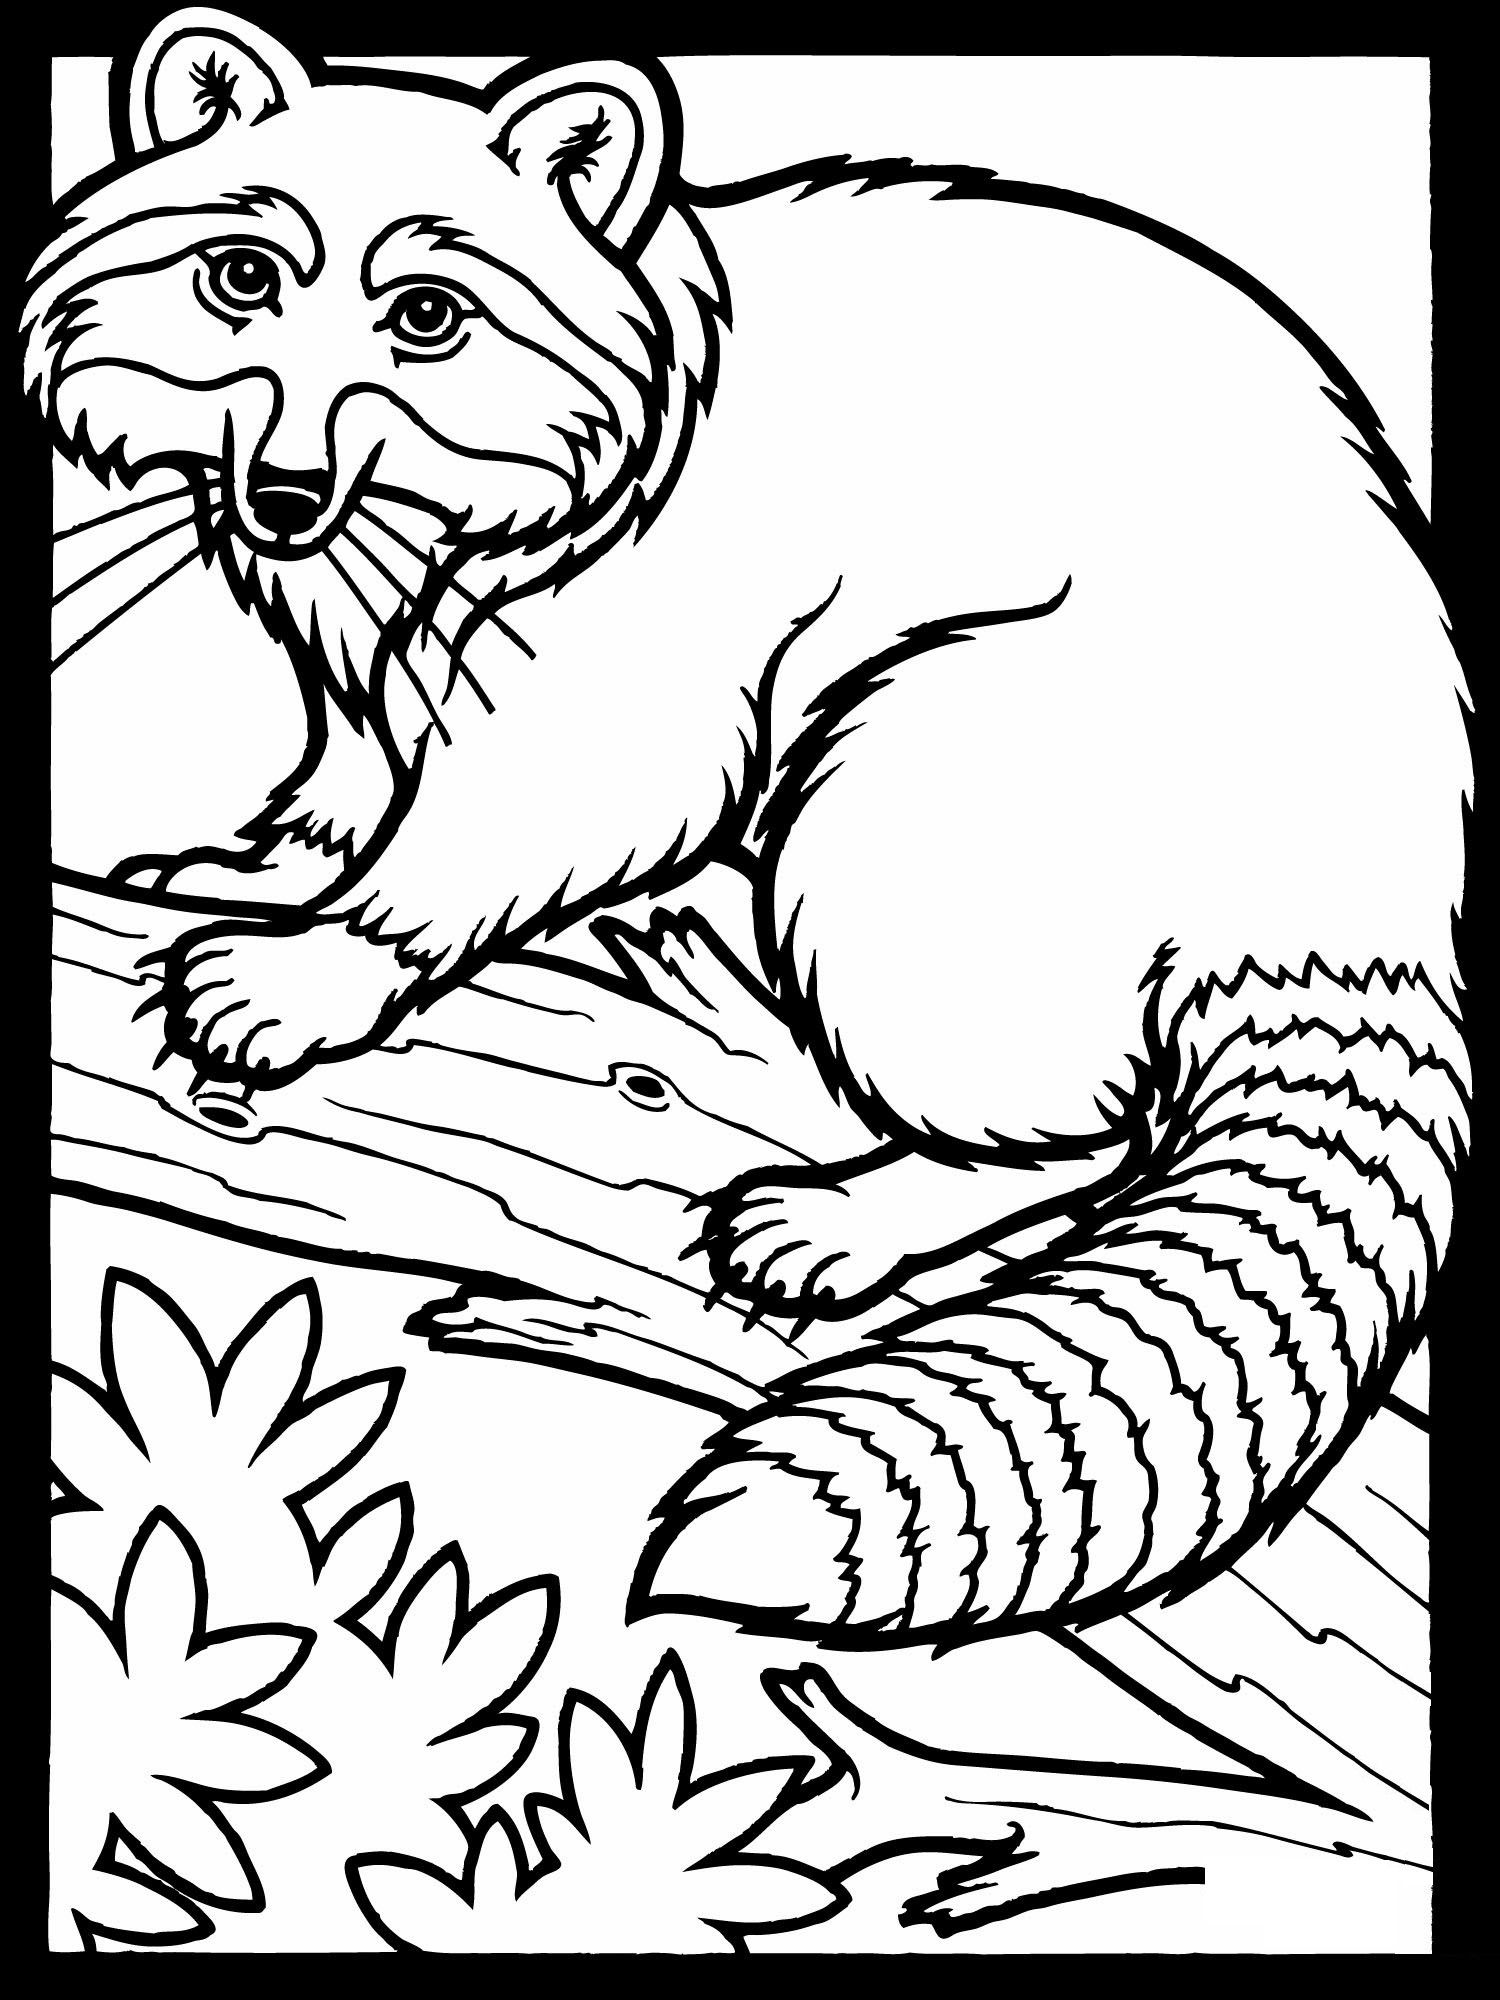 Free Printable Raccoon Coloring Pages For Kids Animal Coloring Pages Coloring Pages For Kids Animal Templates